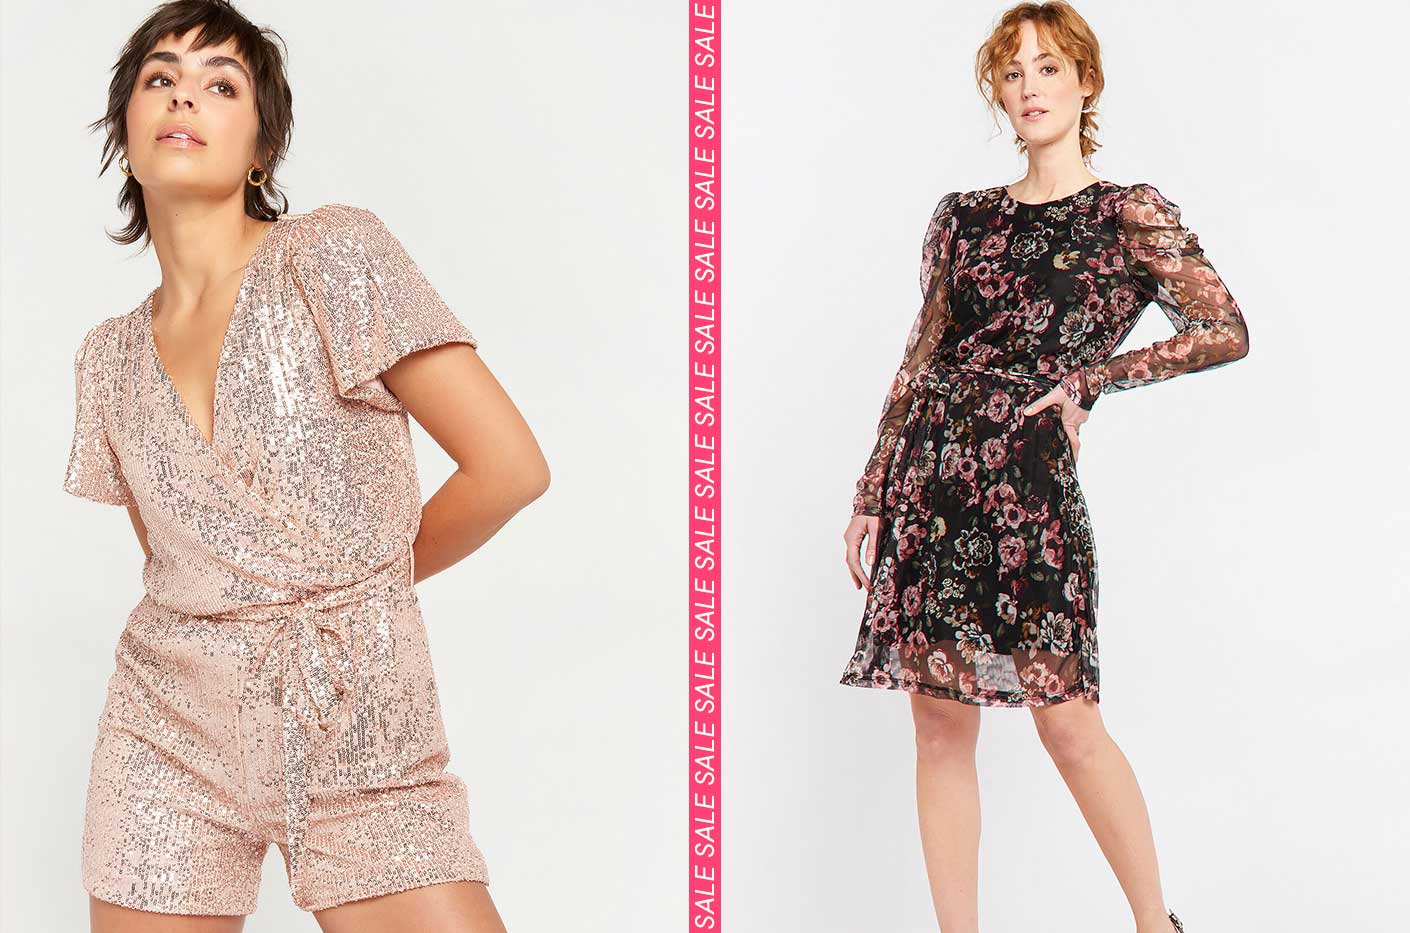 Playsuit with glitter sequins in nude pink color. long sleeve fishnet dress with flower print.